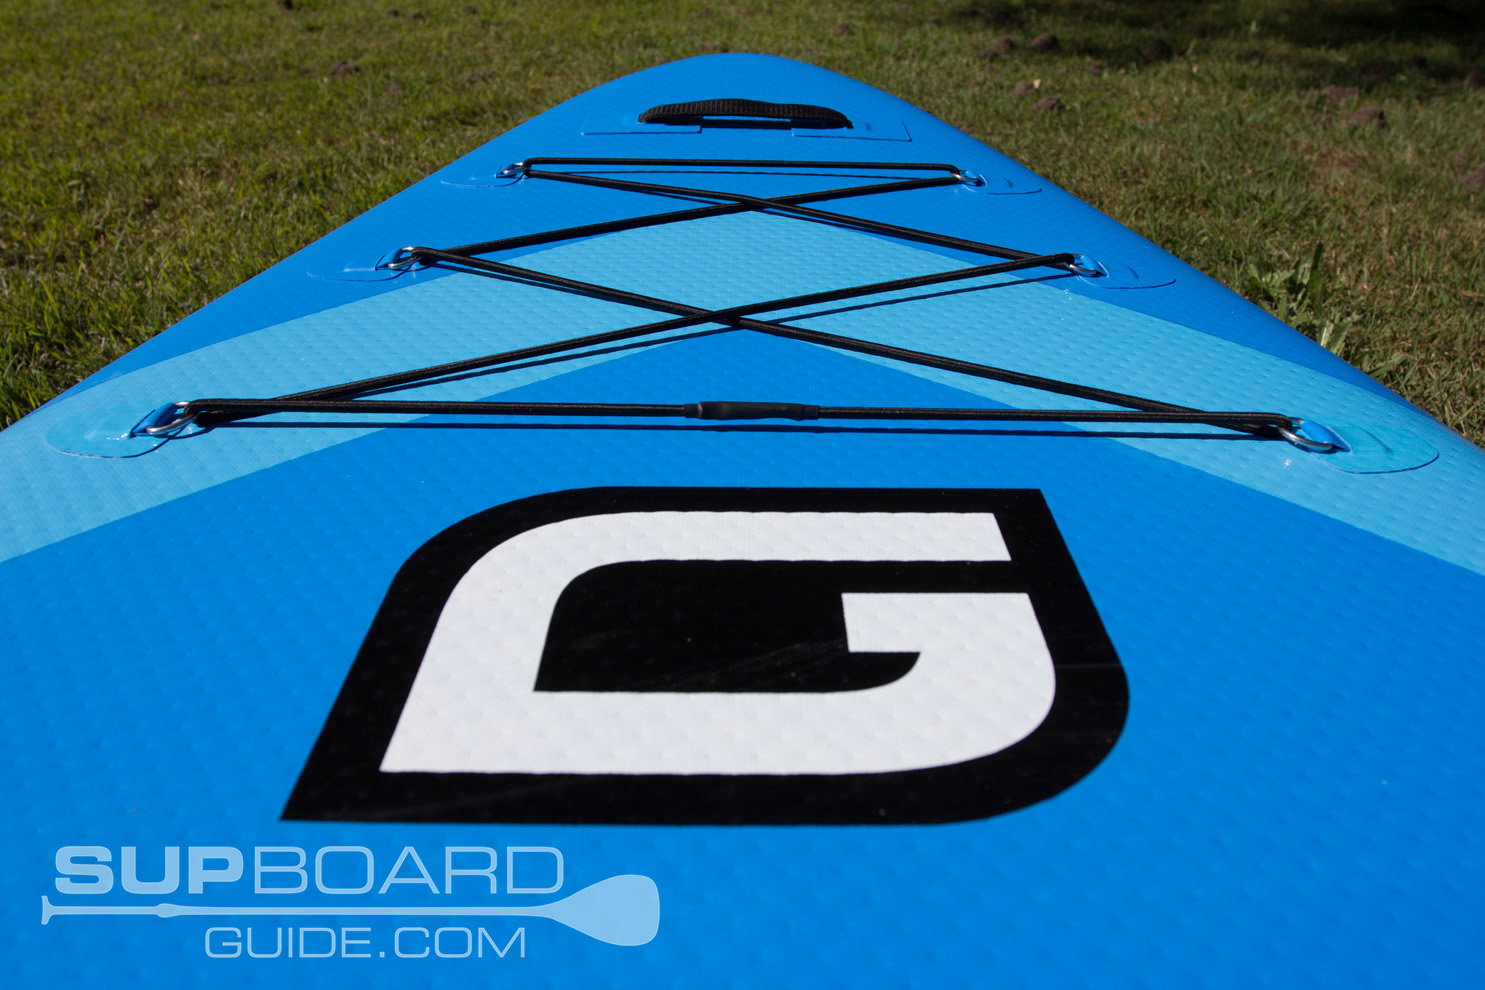 Gili Board Features